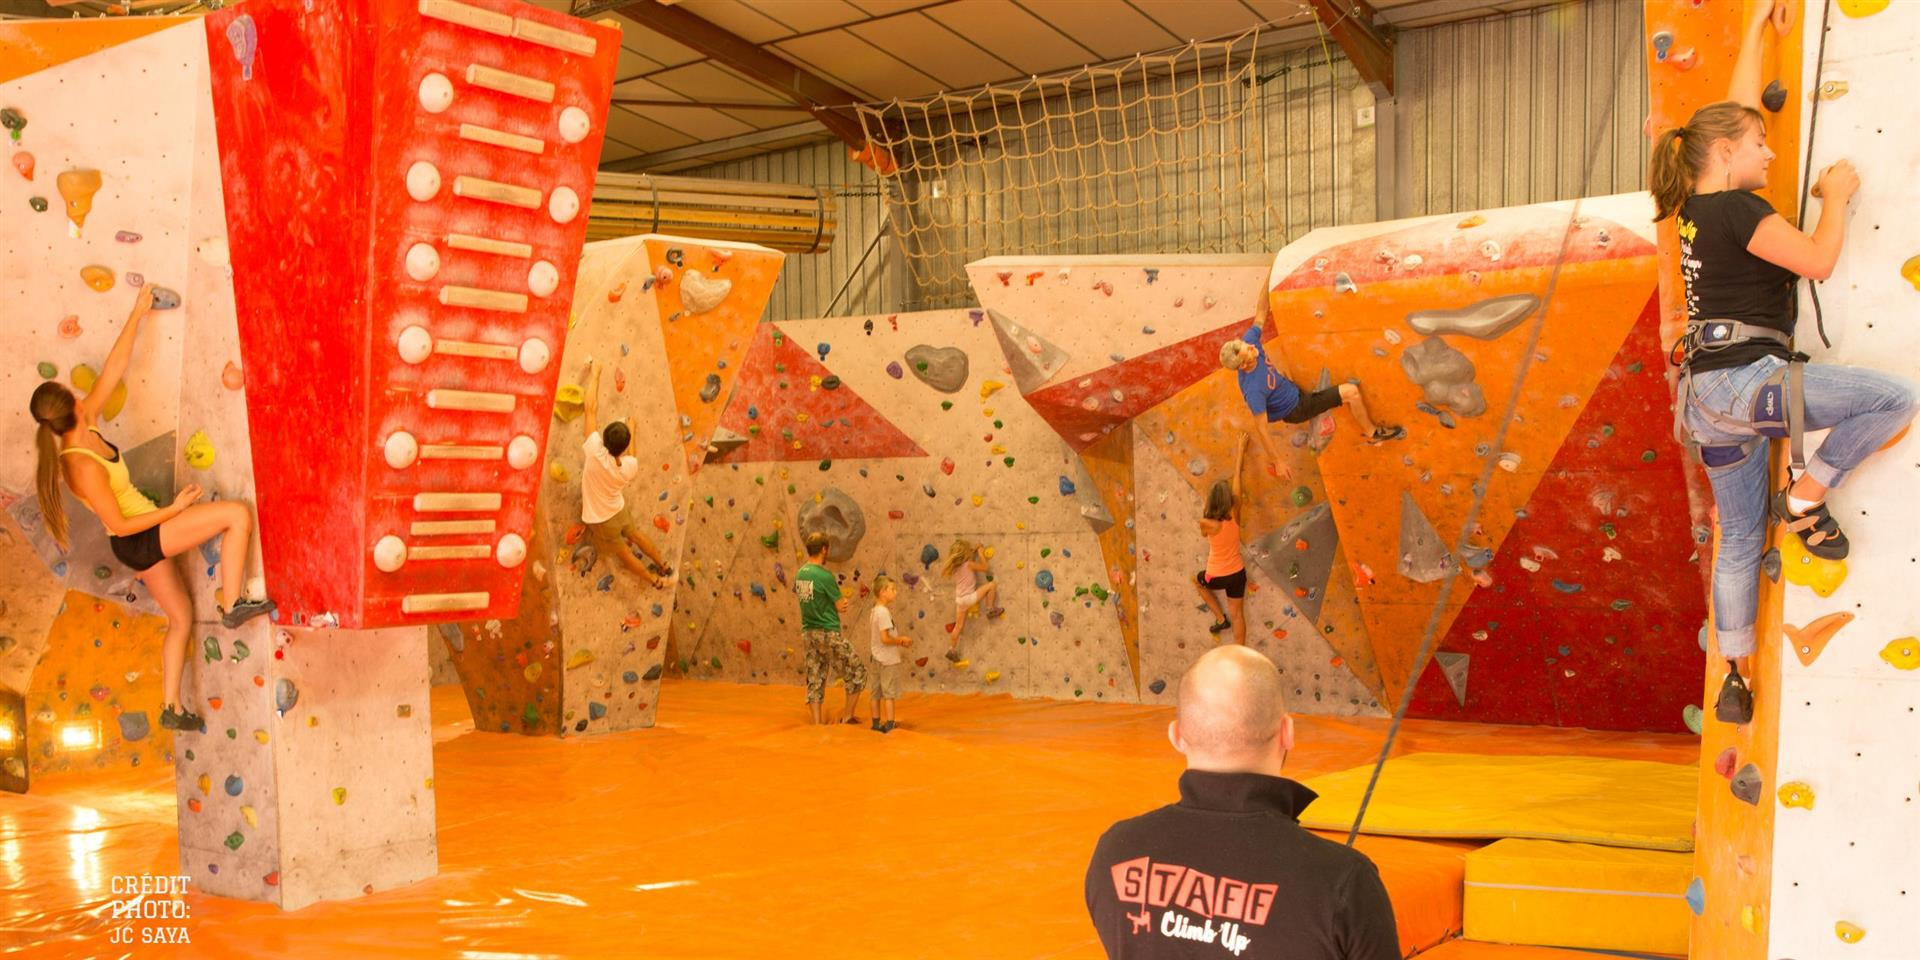 Salle d''escalade Climb Up Dijon - JC SAYA - Climb Up Dijon